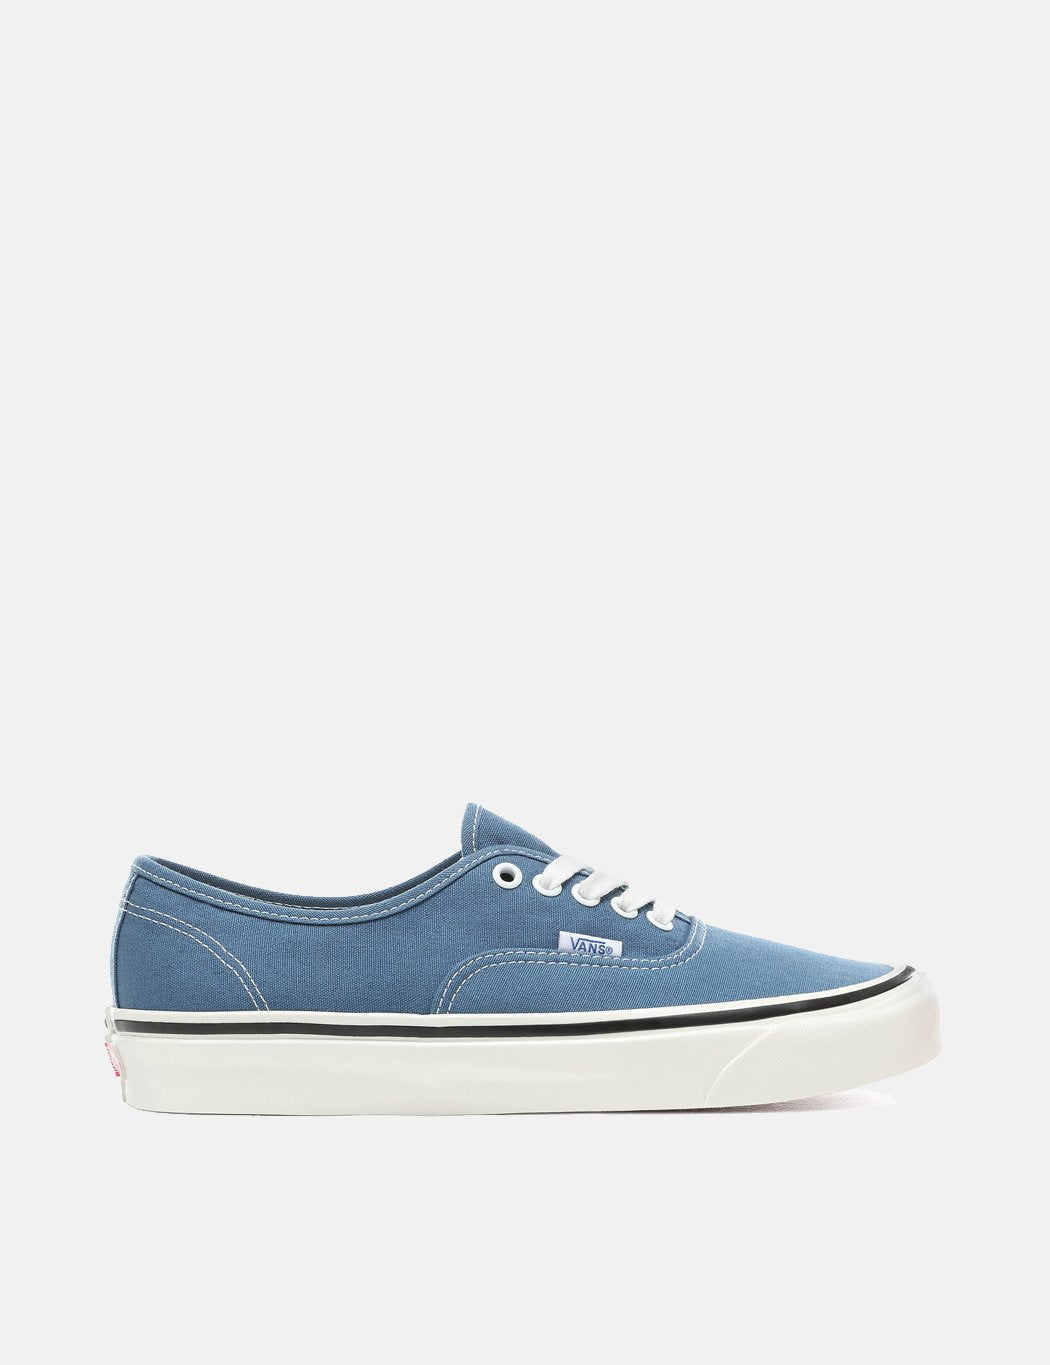 Vans Anaheim Authentic 44 DX (Canvas) - Marine-Blau